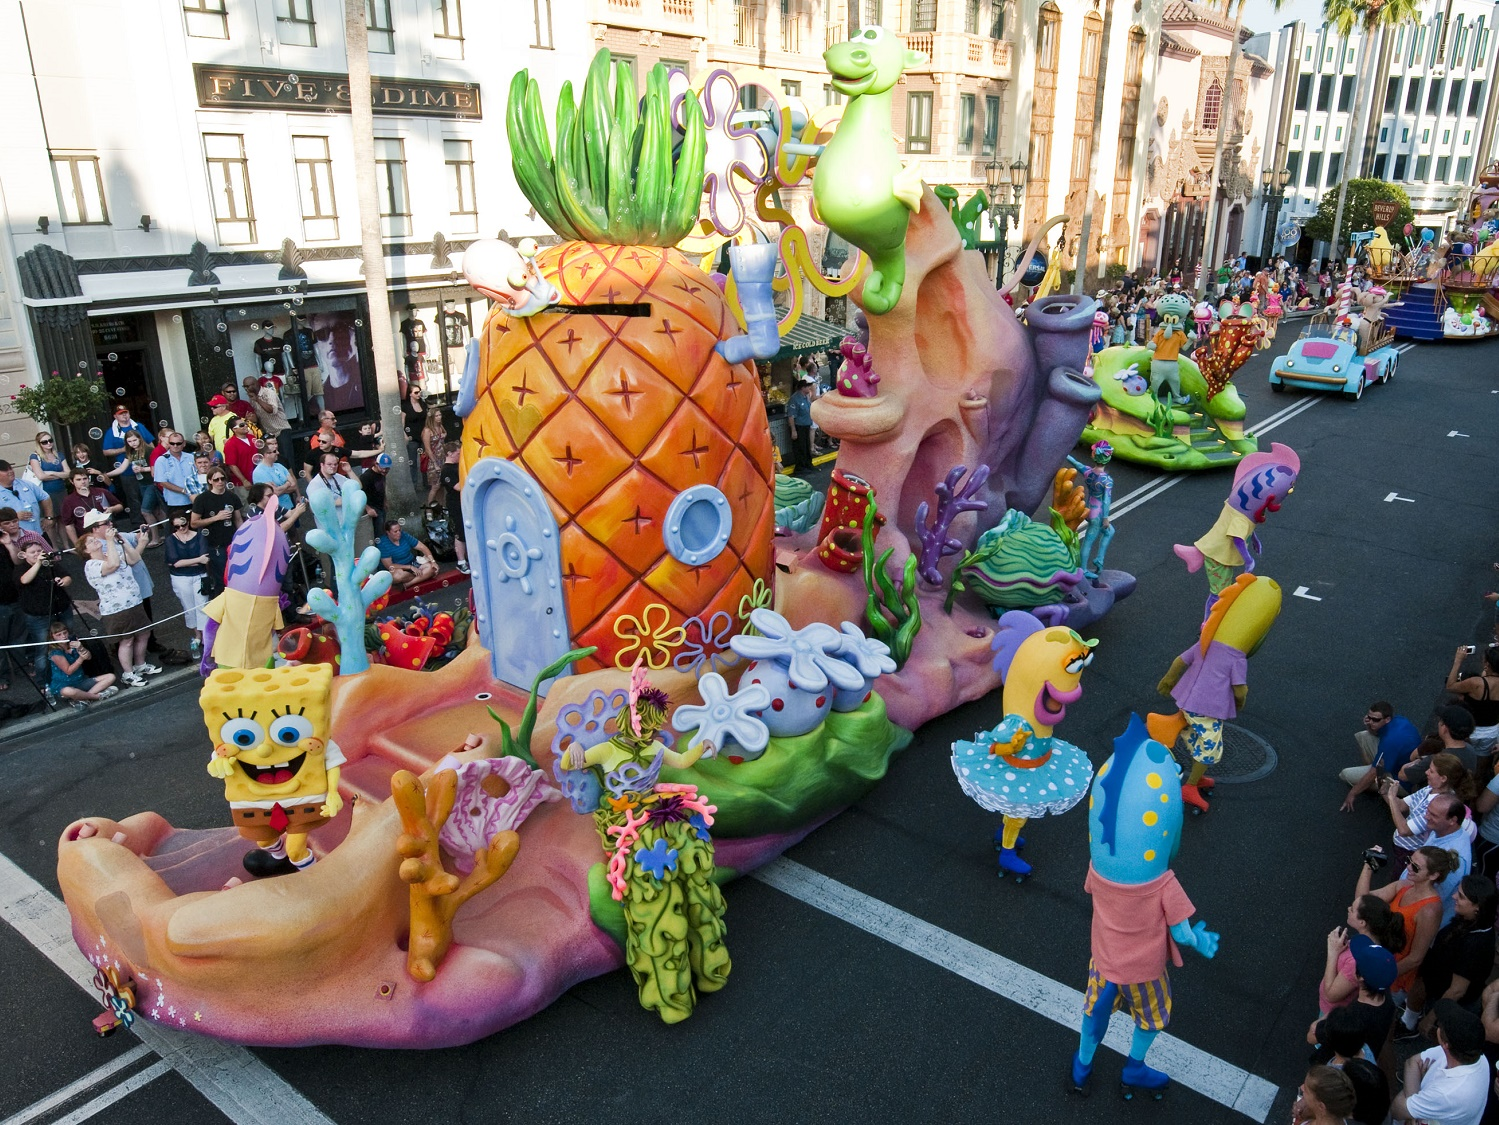 Universal's Superstar Parade is a daily parade of characters and floats that makes its way through the streets of Universal Studios Florida.